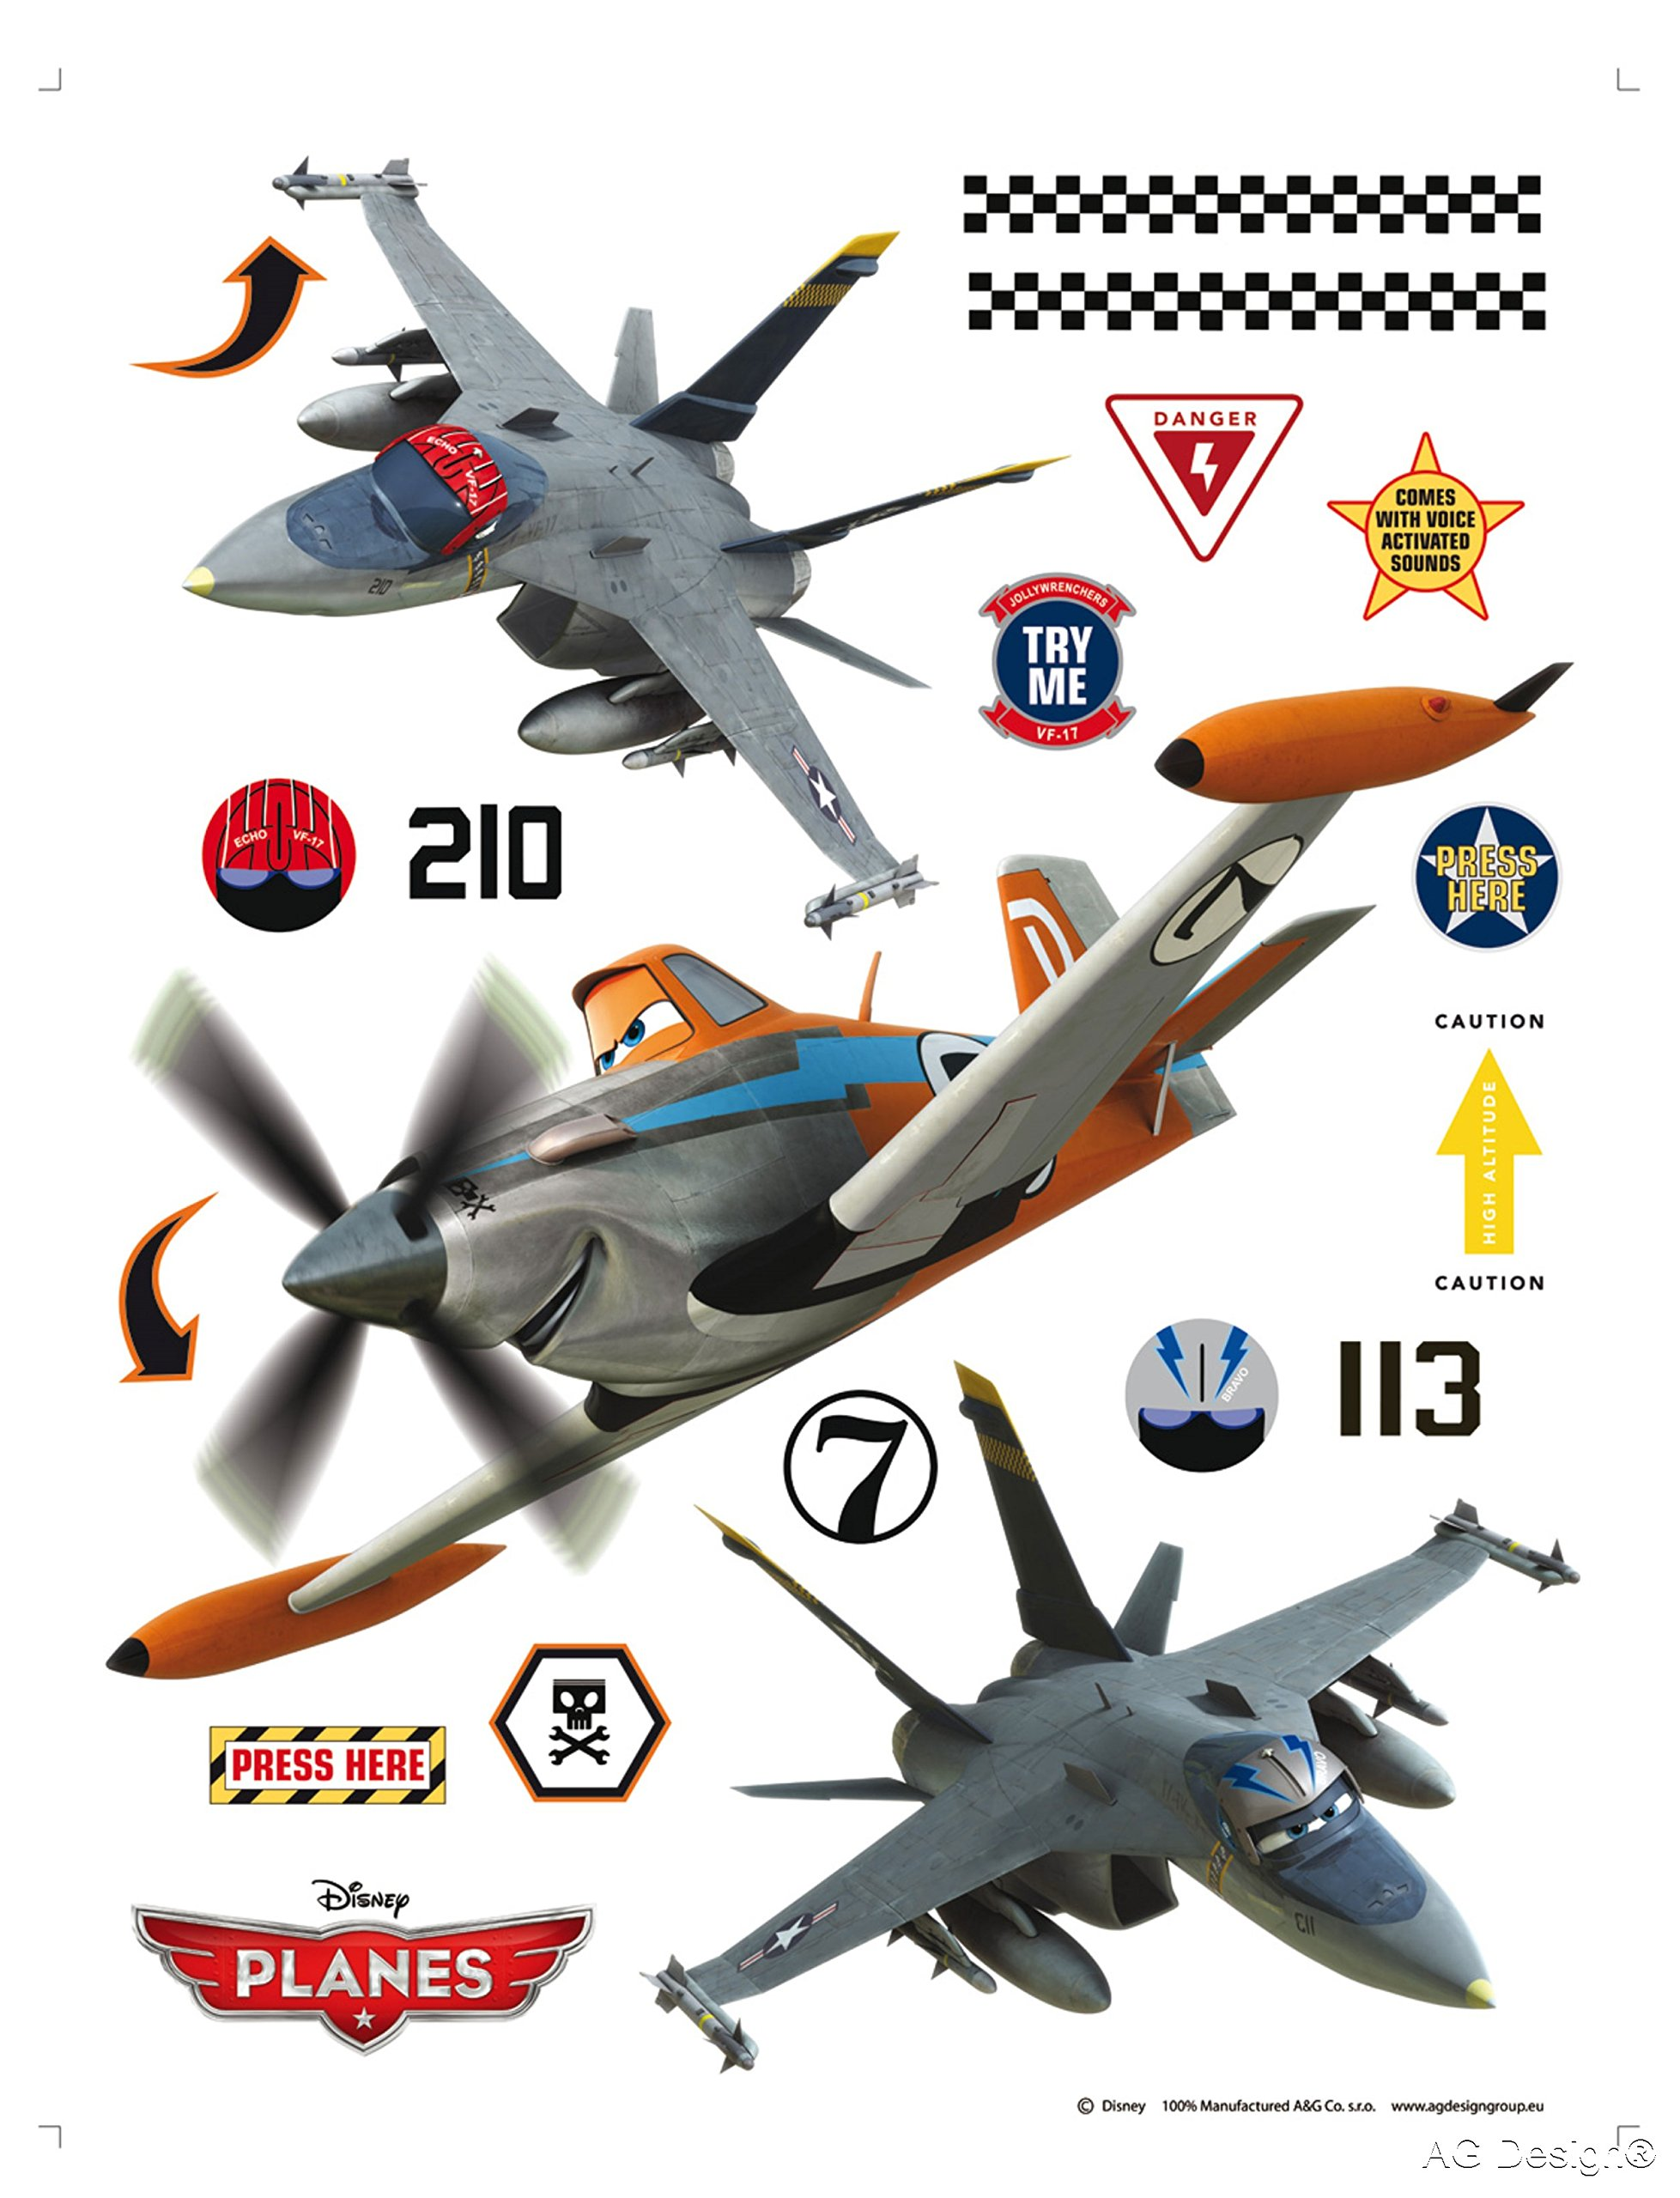 AG Design DK 1772 Autkleber Disney Planes Wall Stickers Part 14